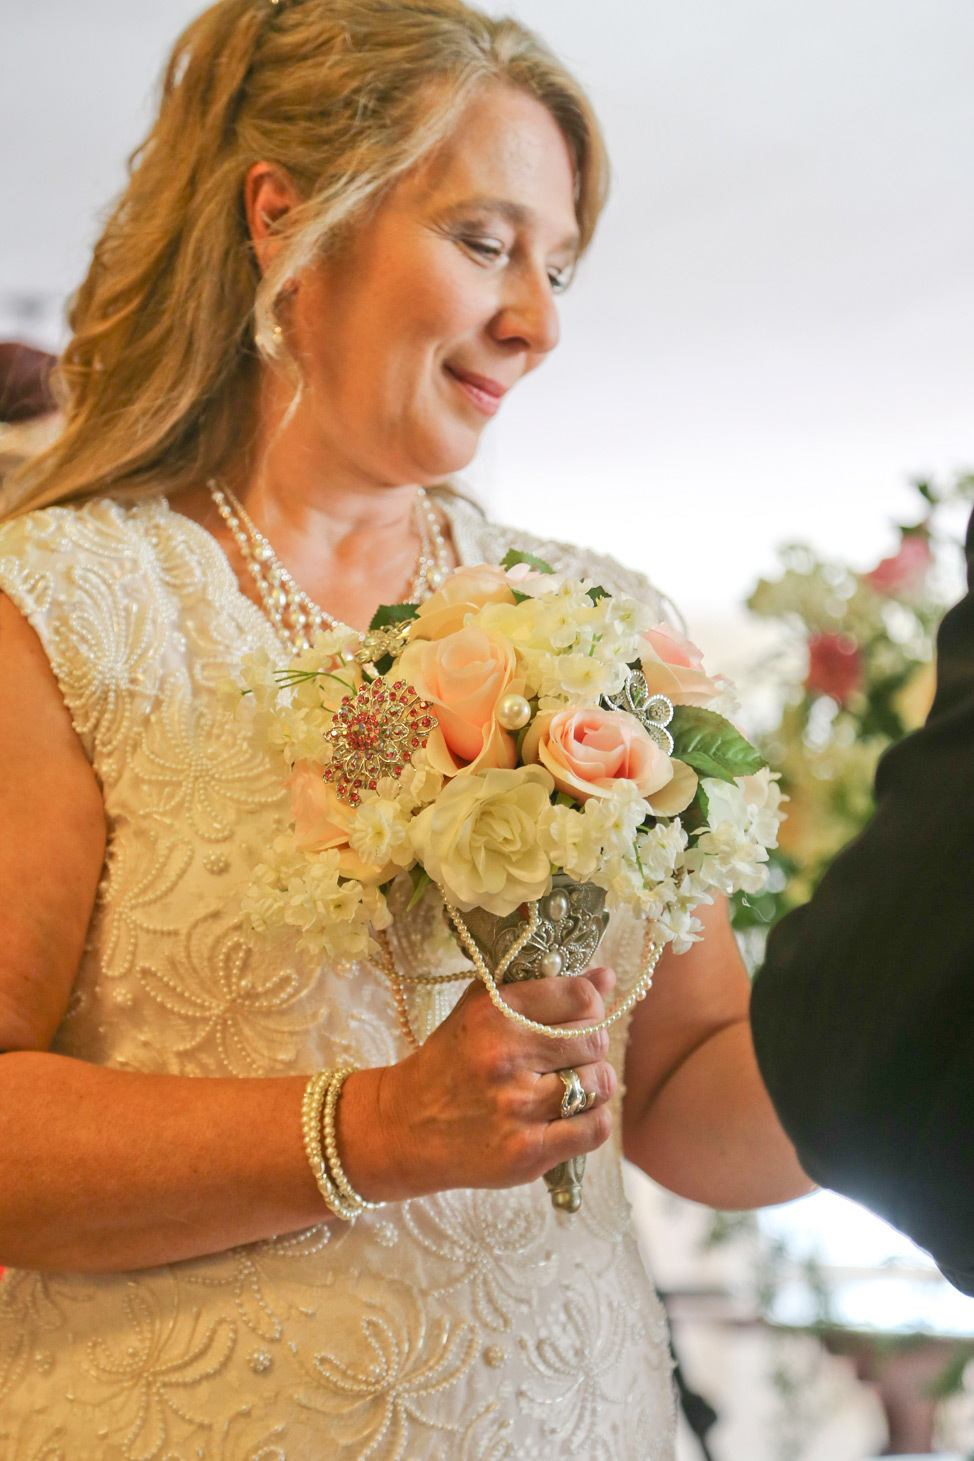 Wedding at the Staley Mansion, Decatur, Illinois